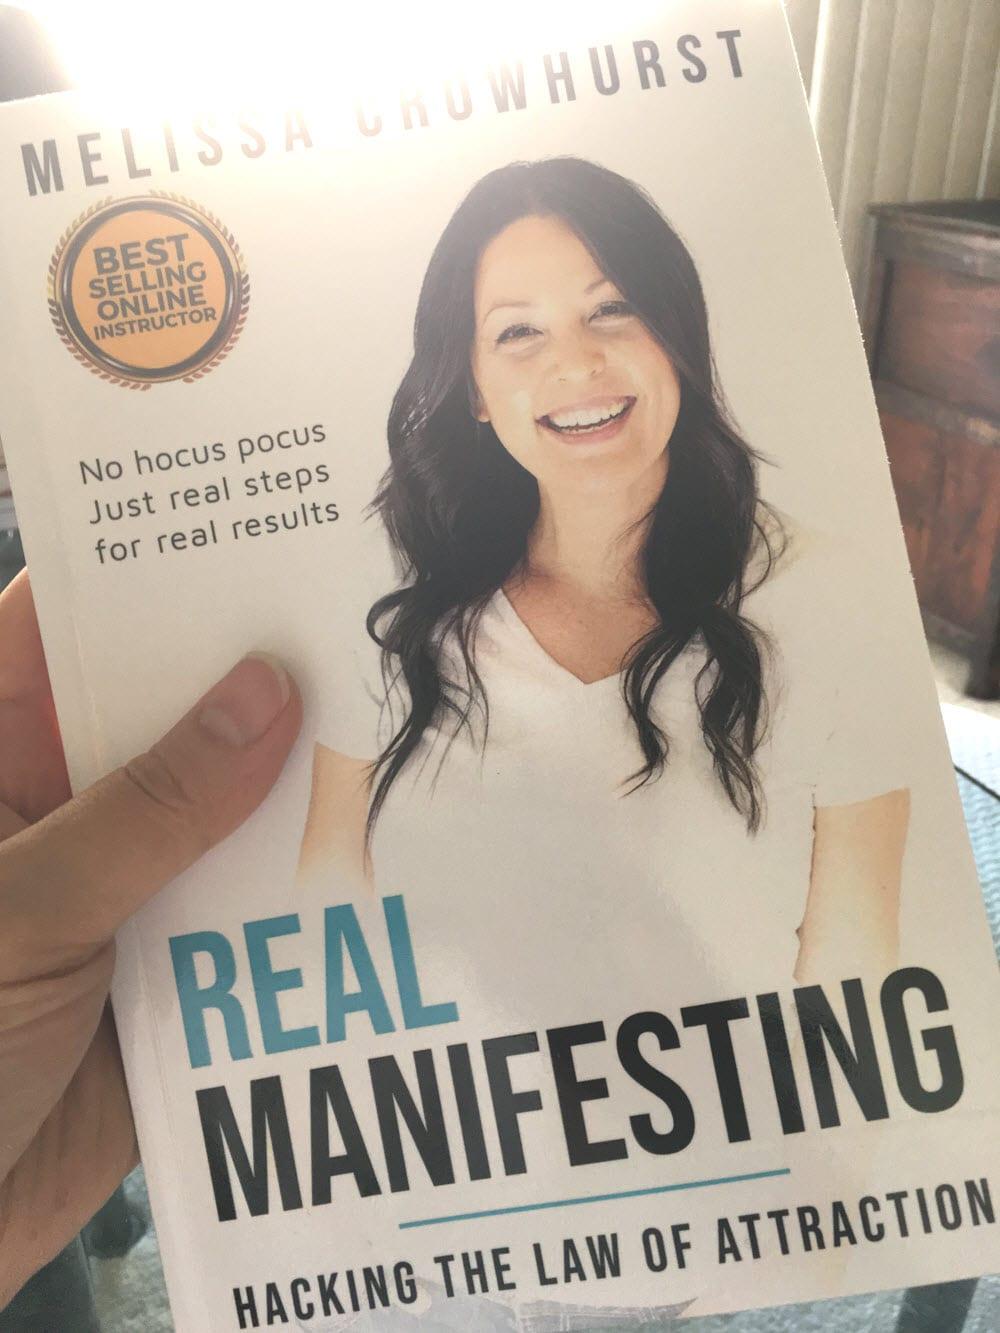 Real Manifesting: Hacking the Law of Attraction (Signed)